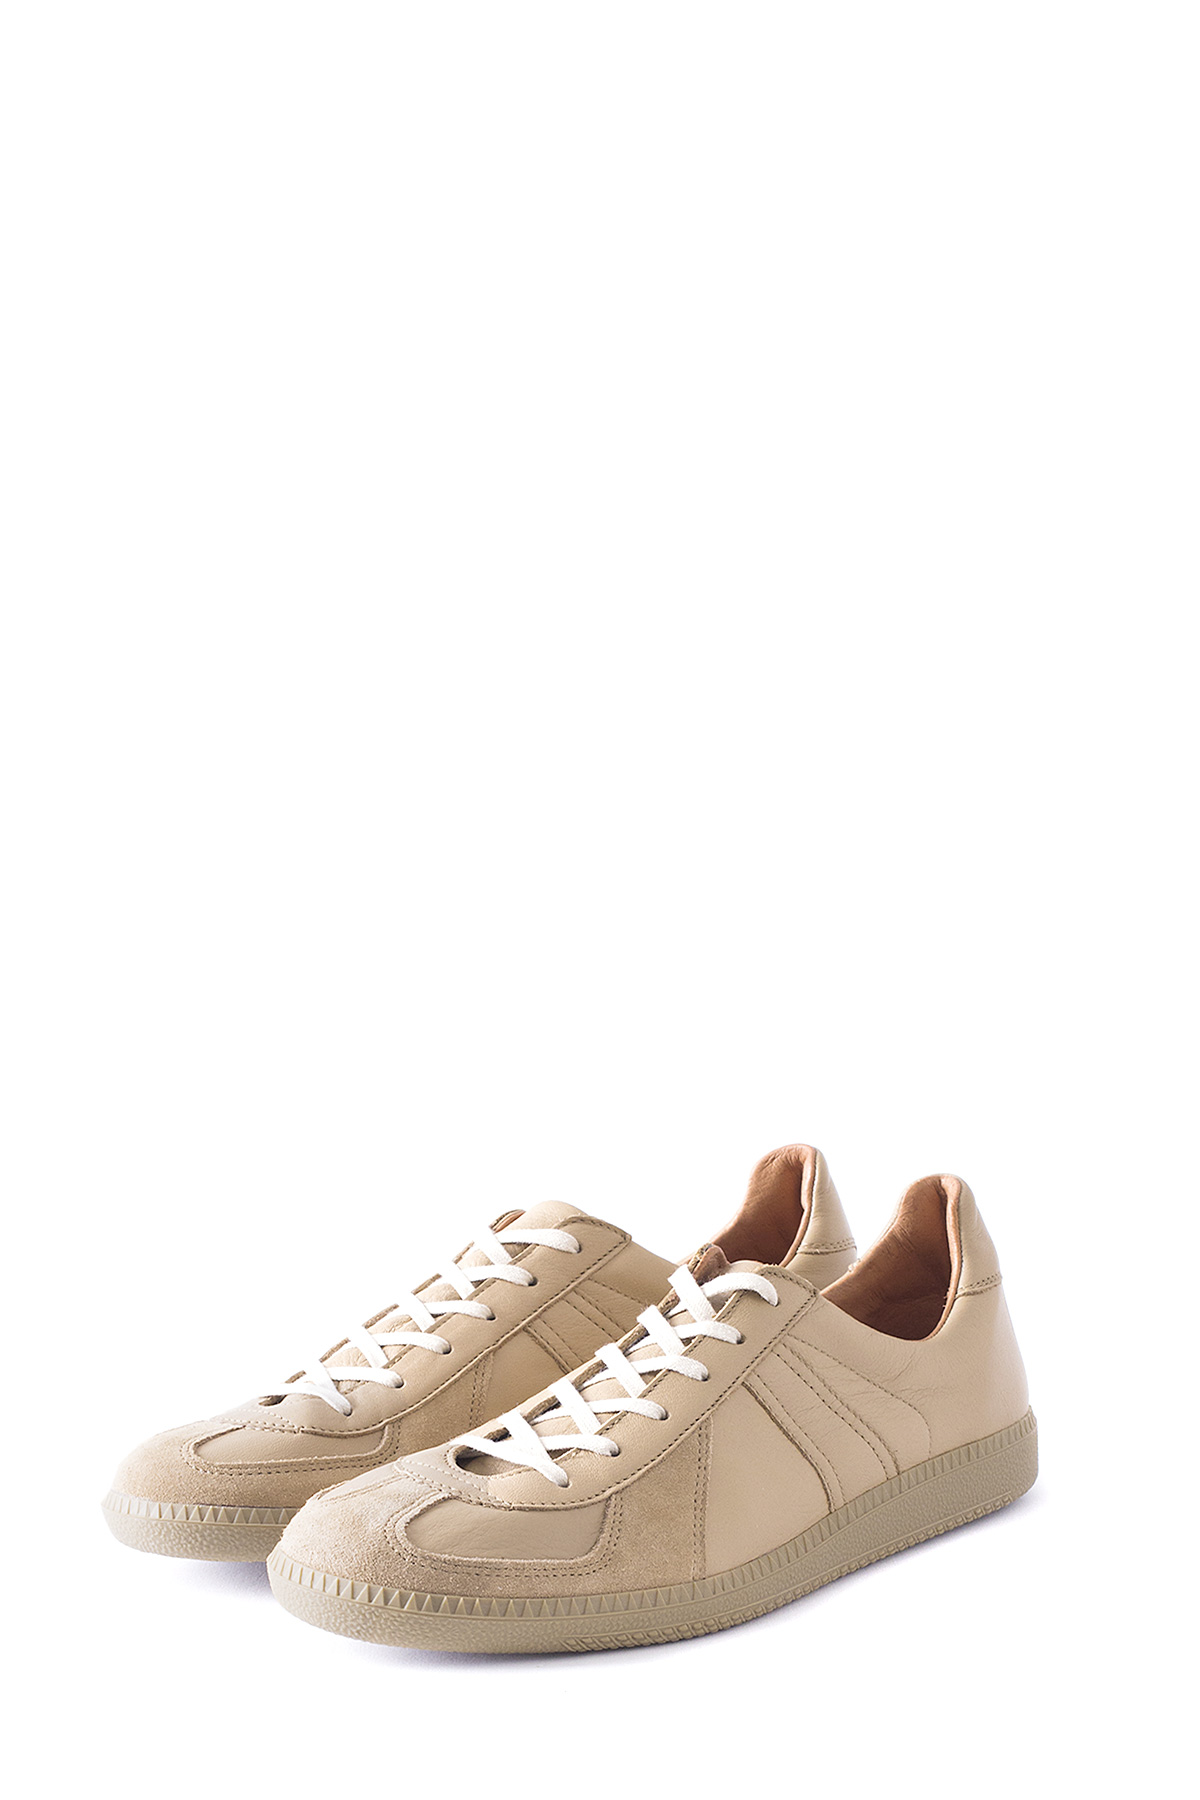 REPRODUCTION OF FOUND : German Military Trainer (Beige)